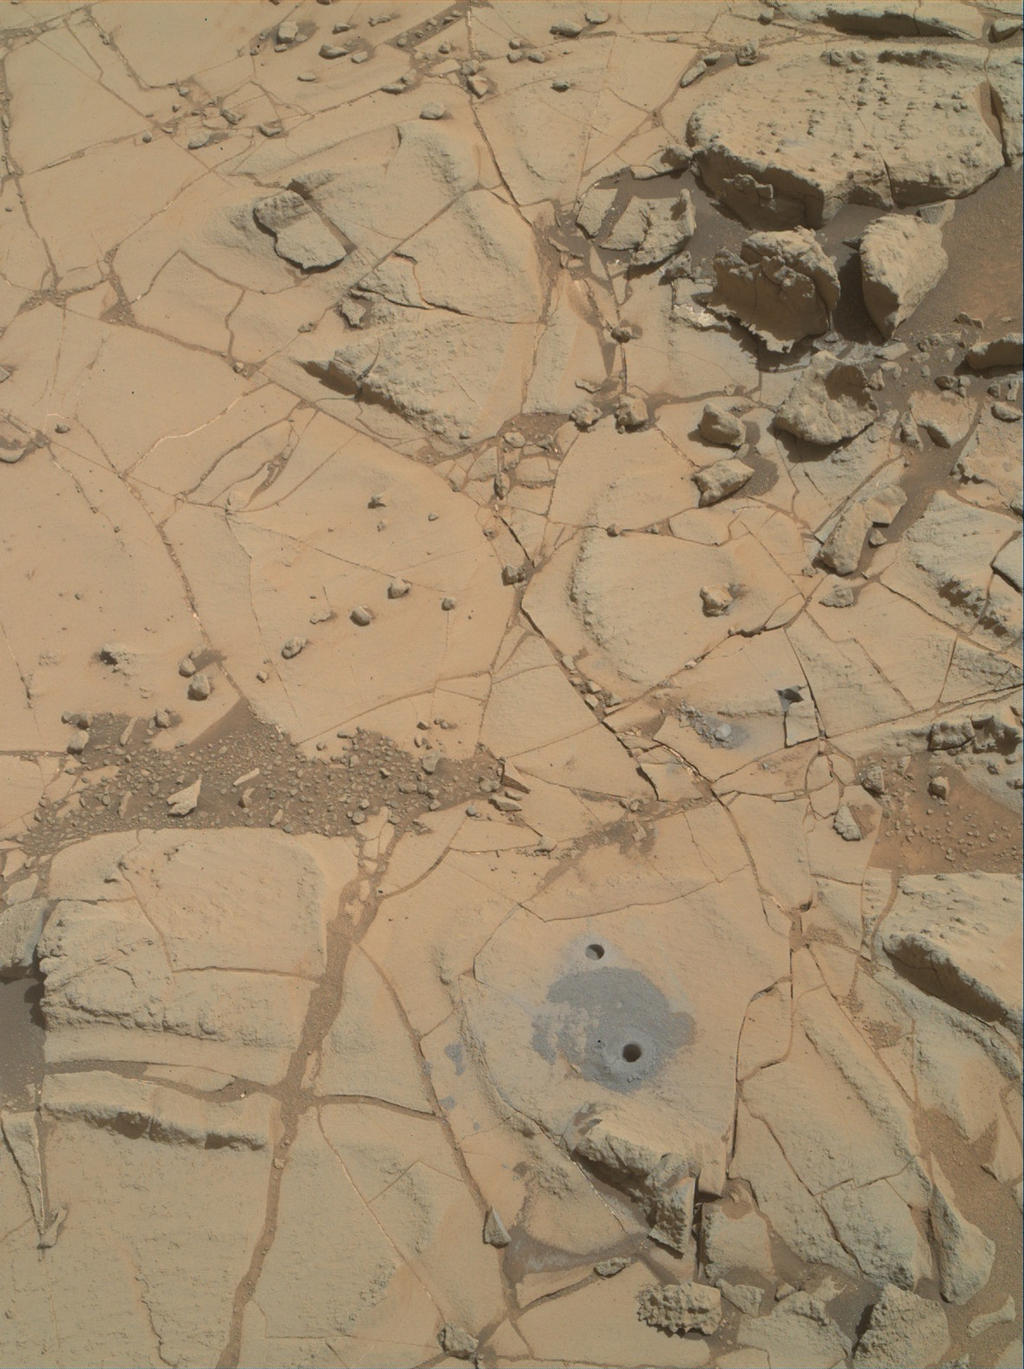 Site of Curiosity's Second Bite of Mount Sharp